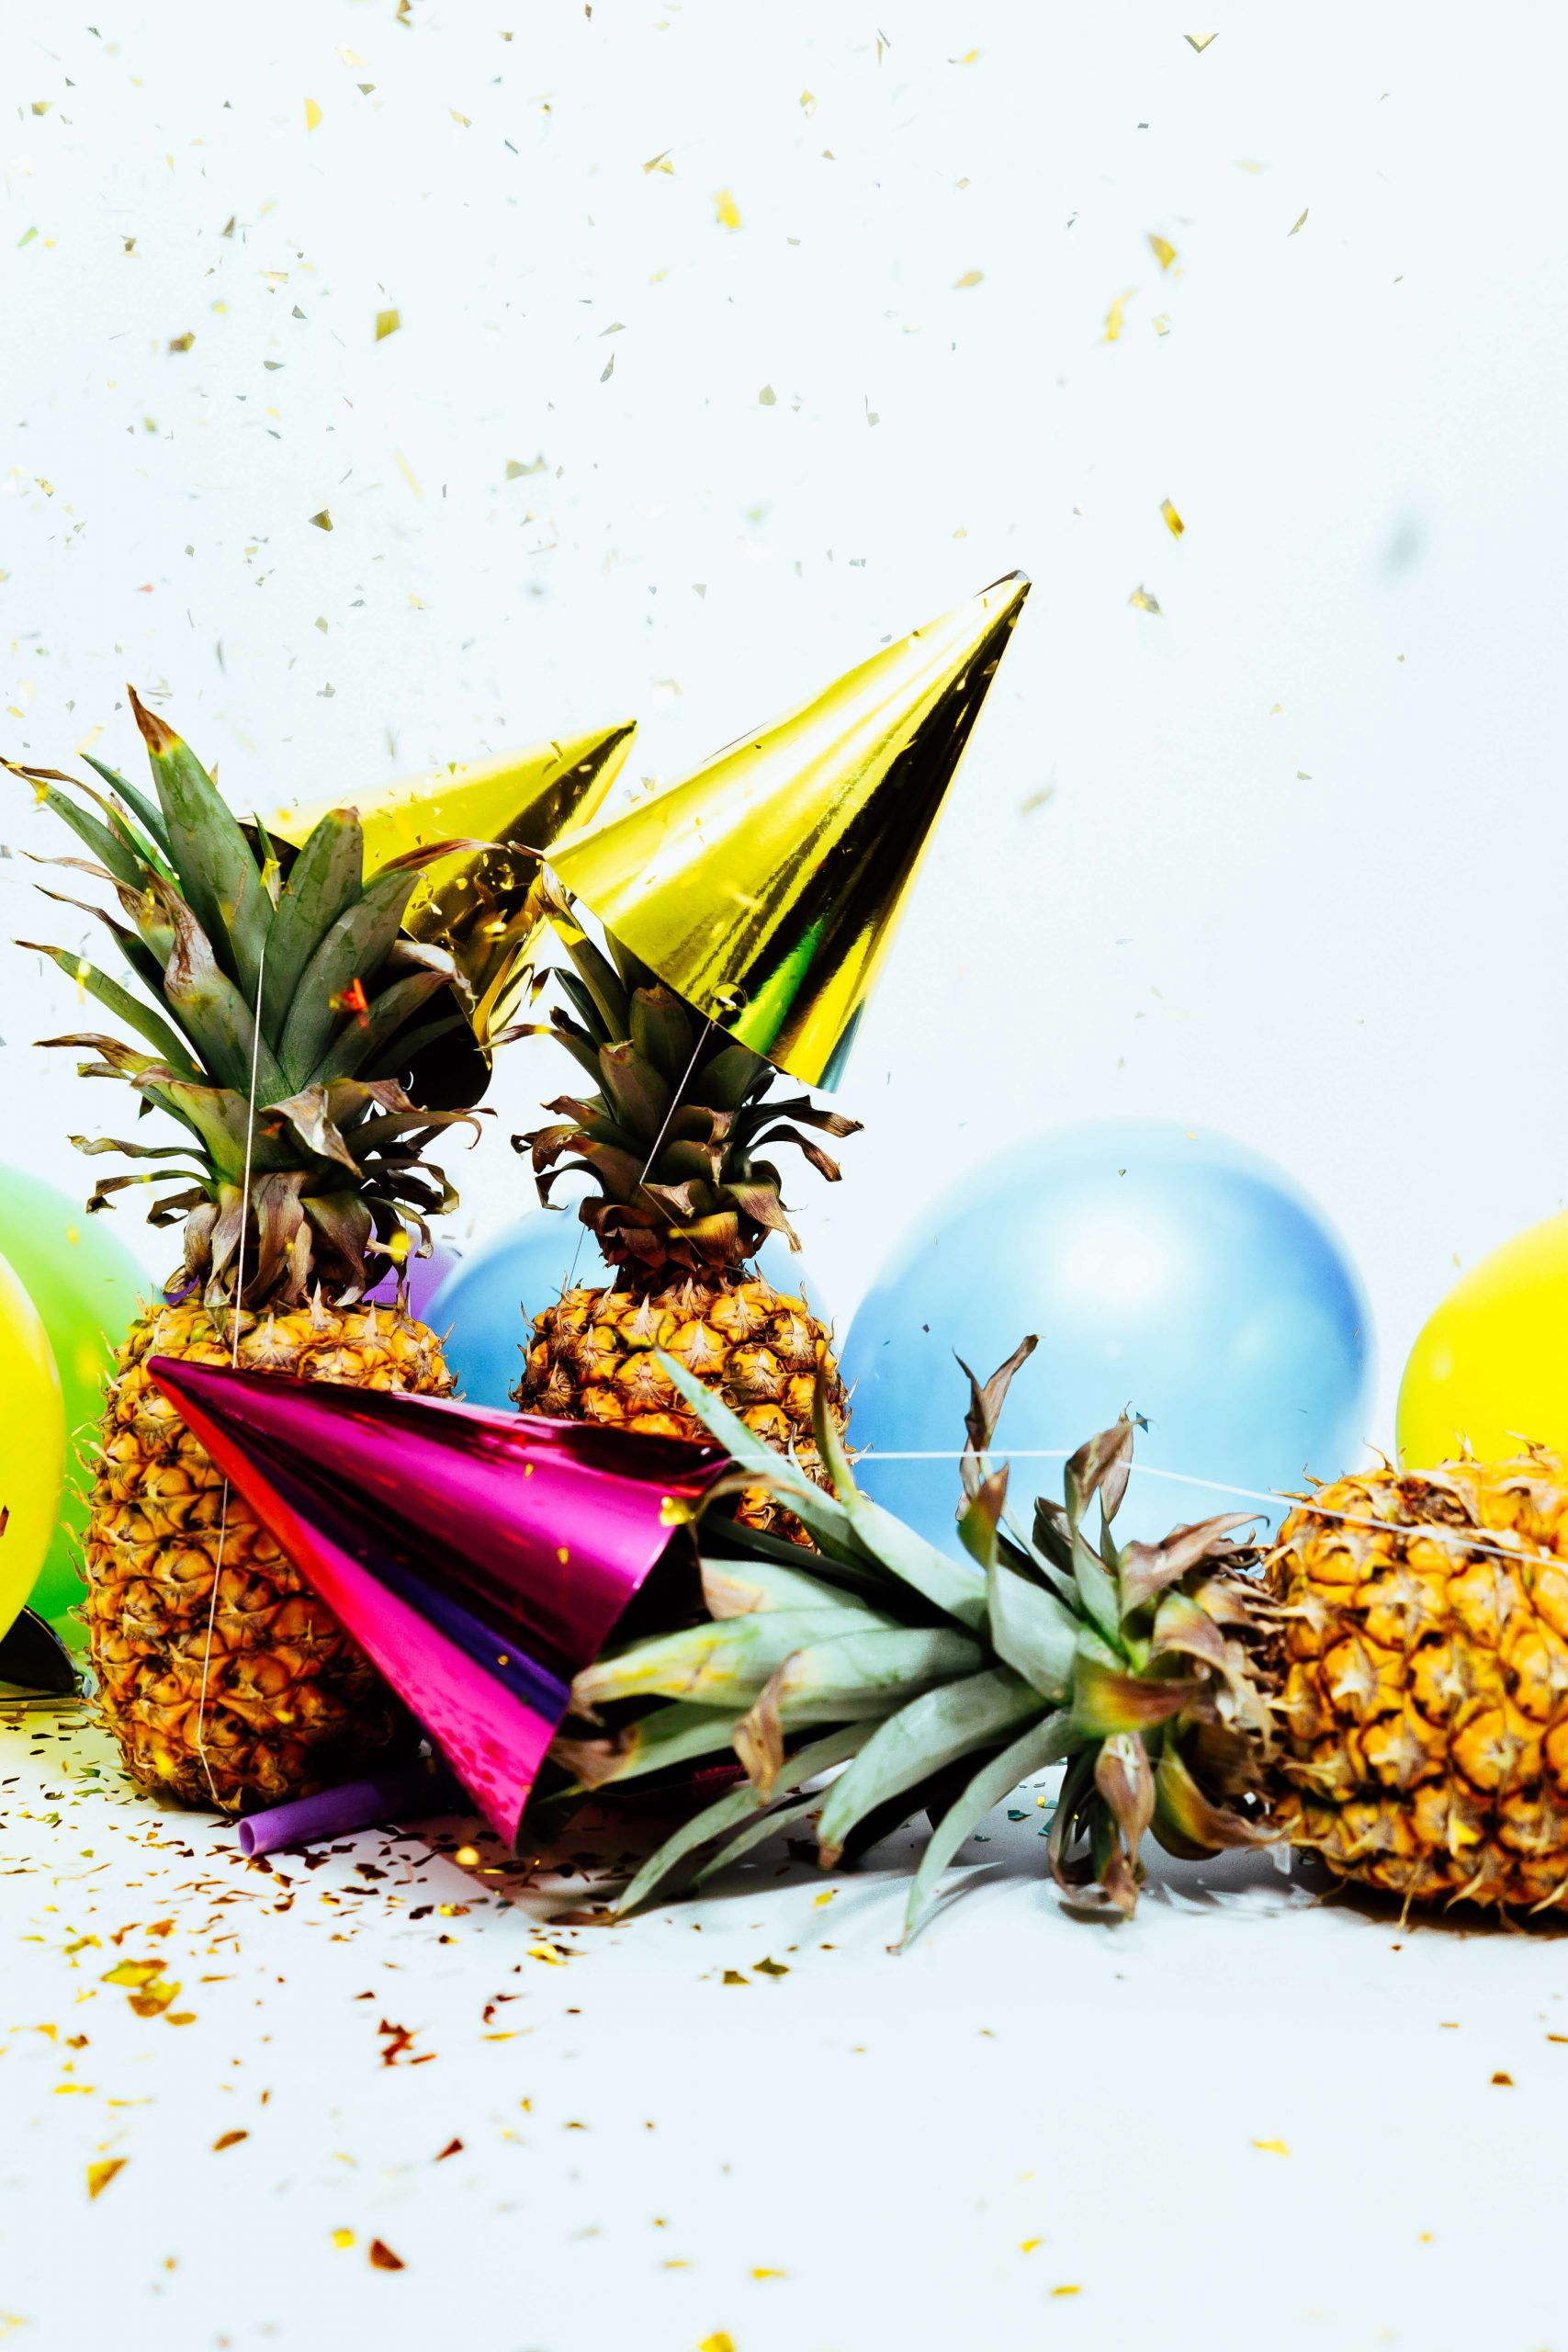 Pineapples, party hats, balloons, and confetti